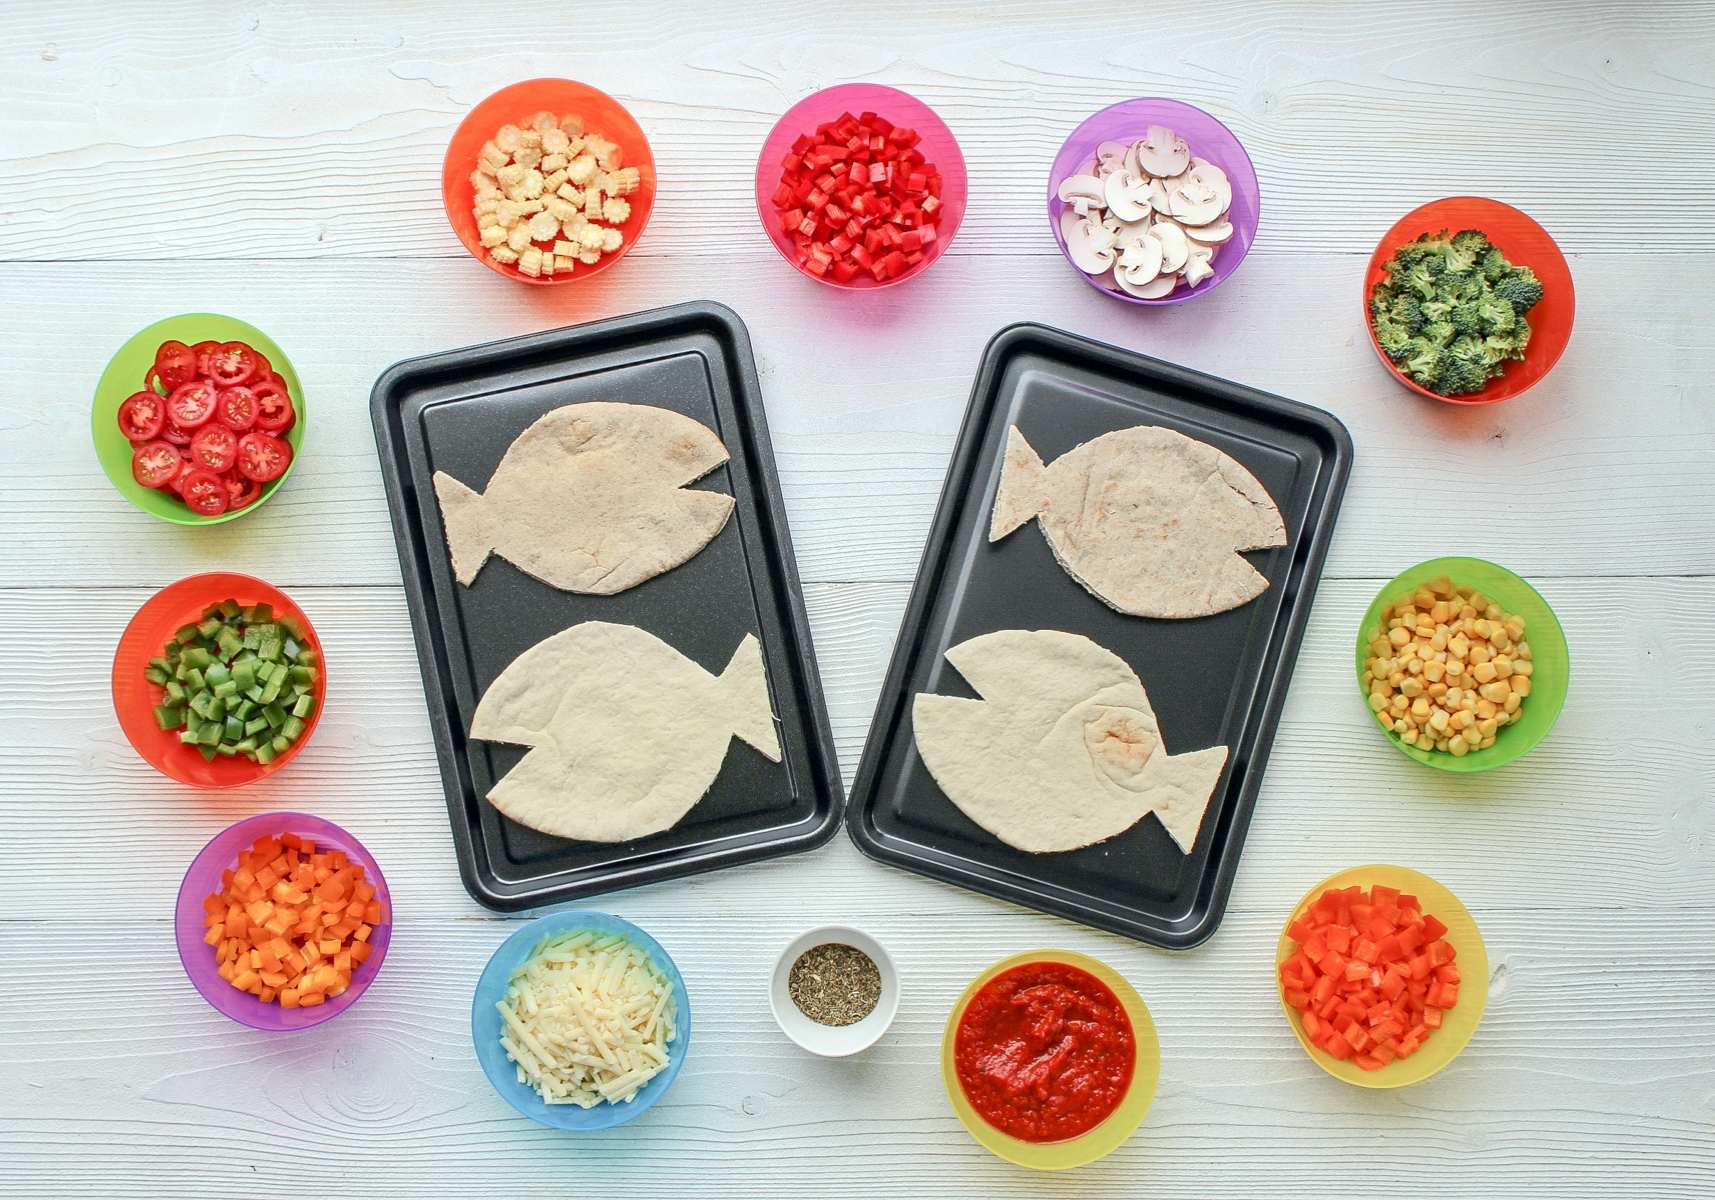 Carefully trim pitta into fish shapes